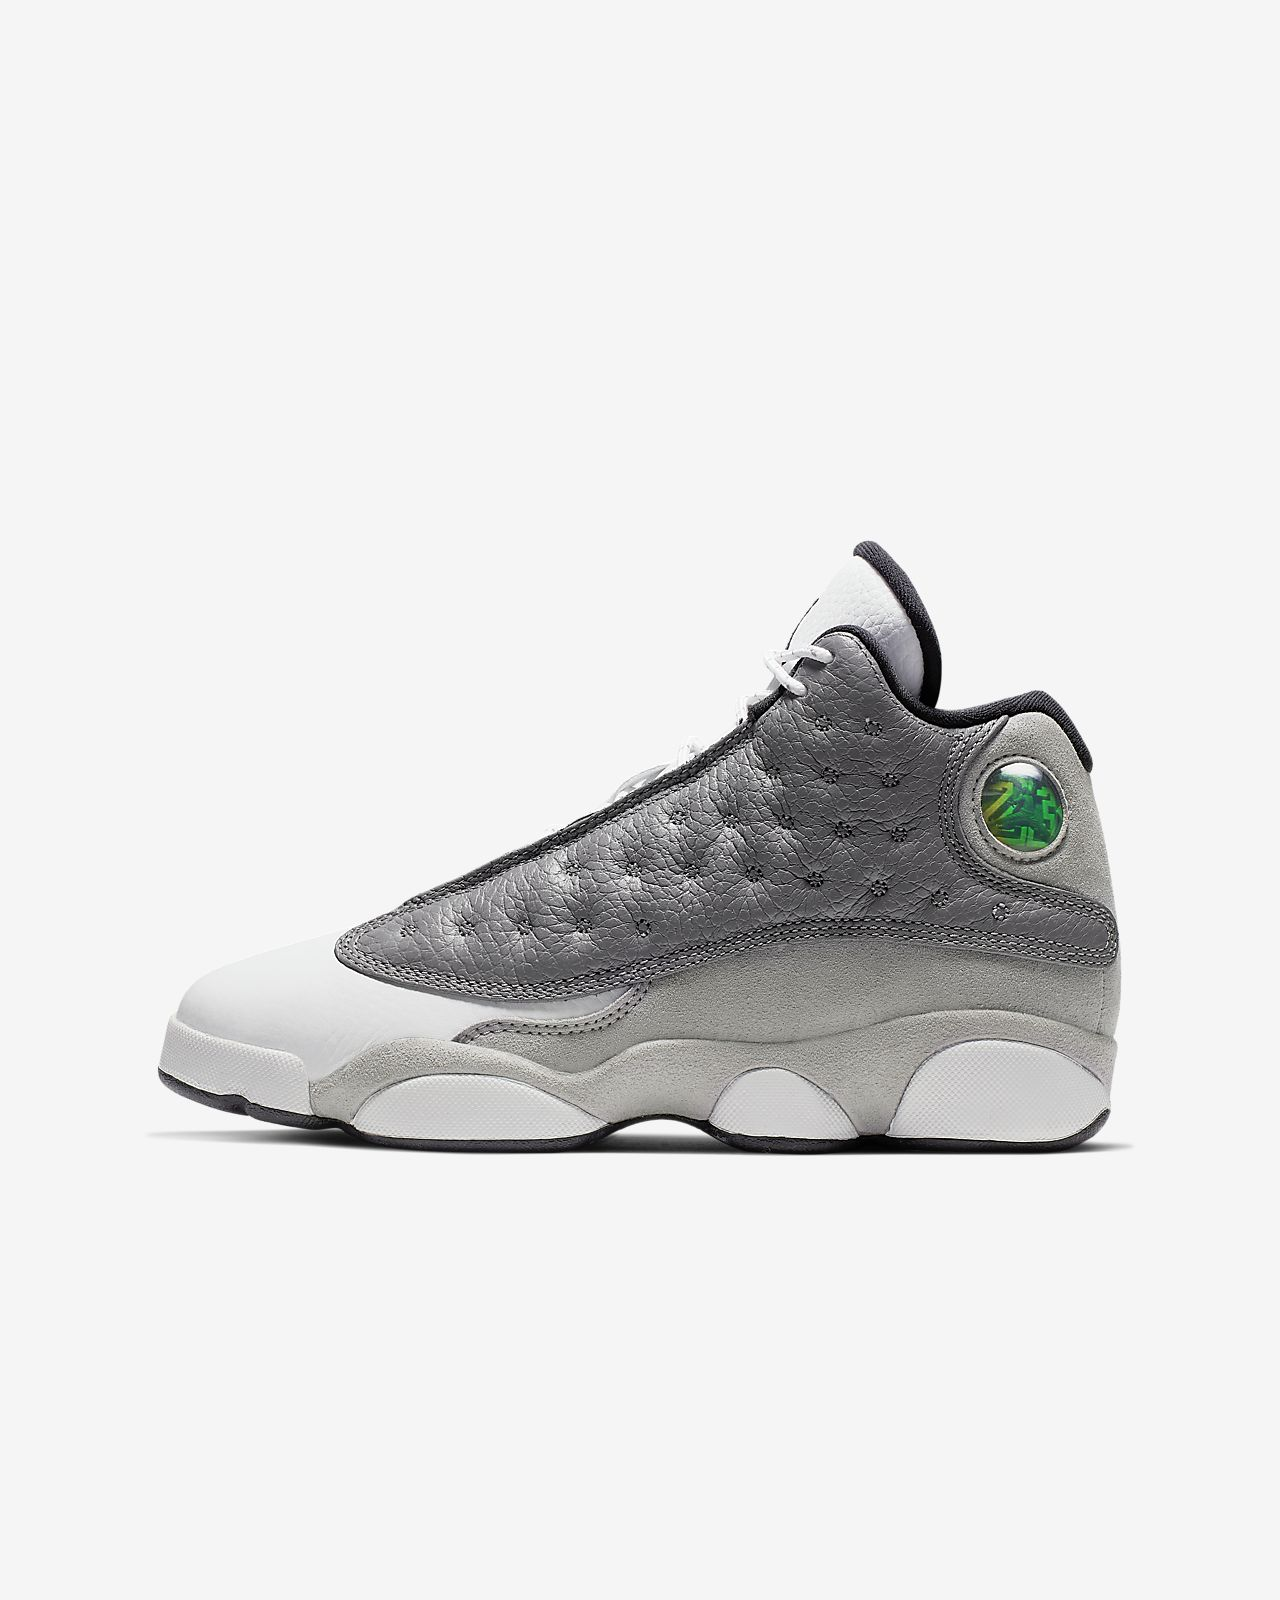 new style a4e89 ab1e1 ... Air Jordan 13 Retro Big Kids  Shoe